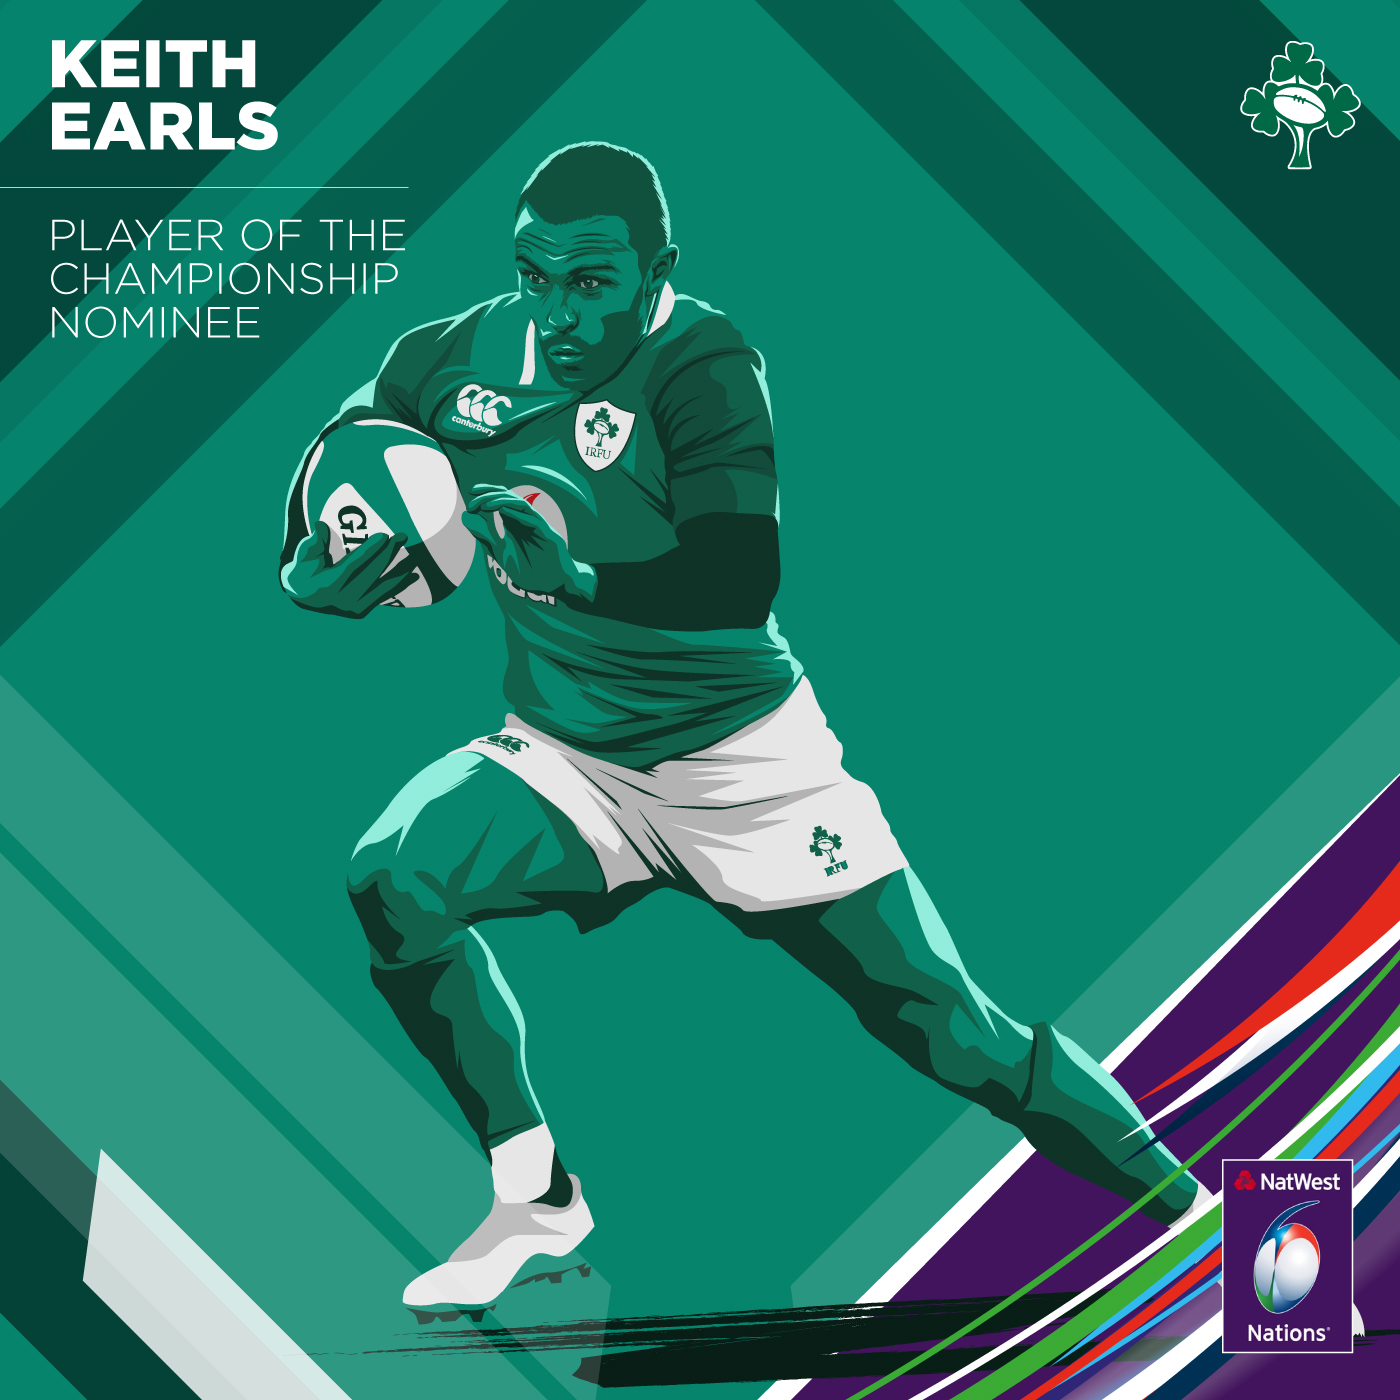 Keith-Earls-POTC-18-03-18